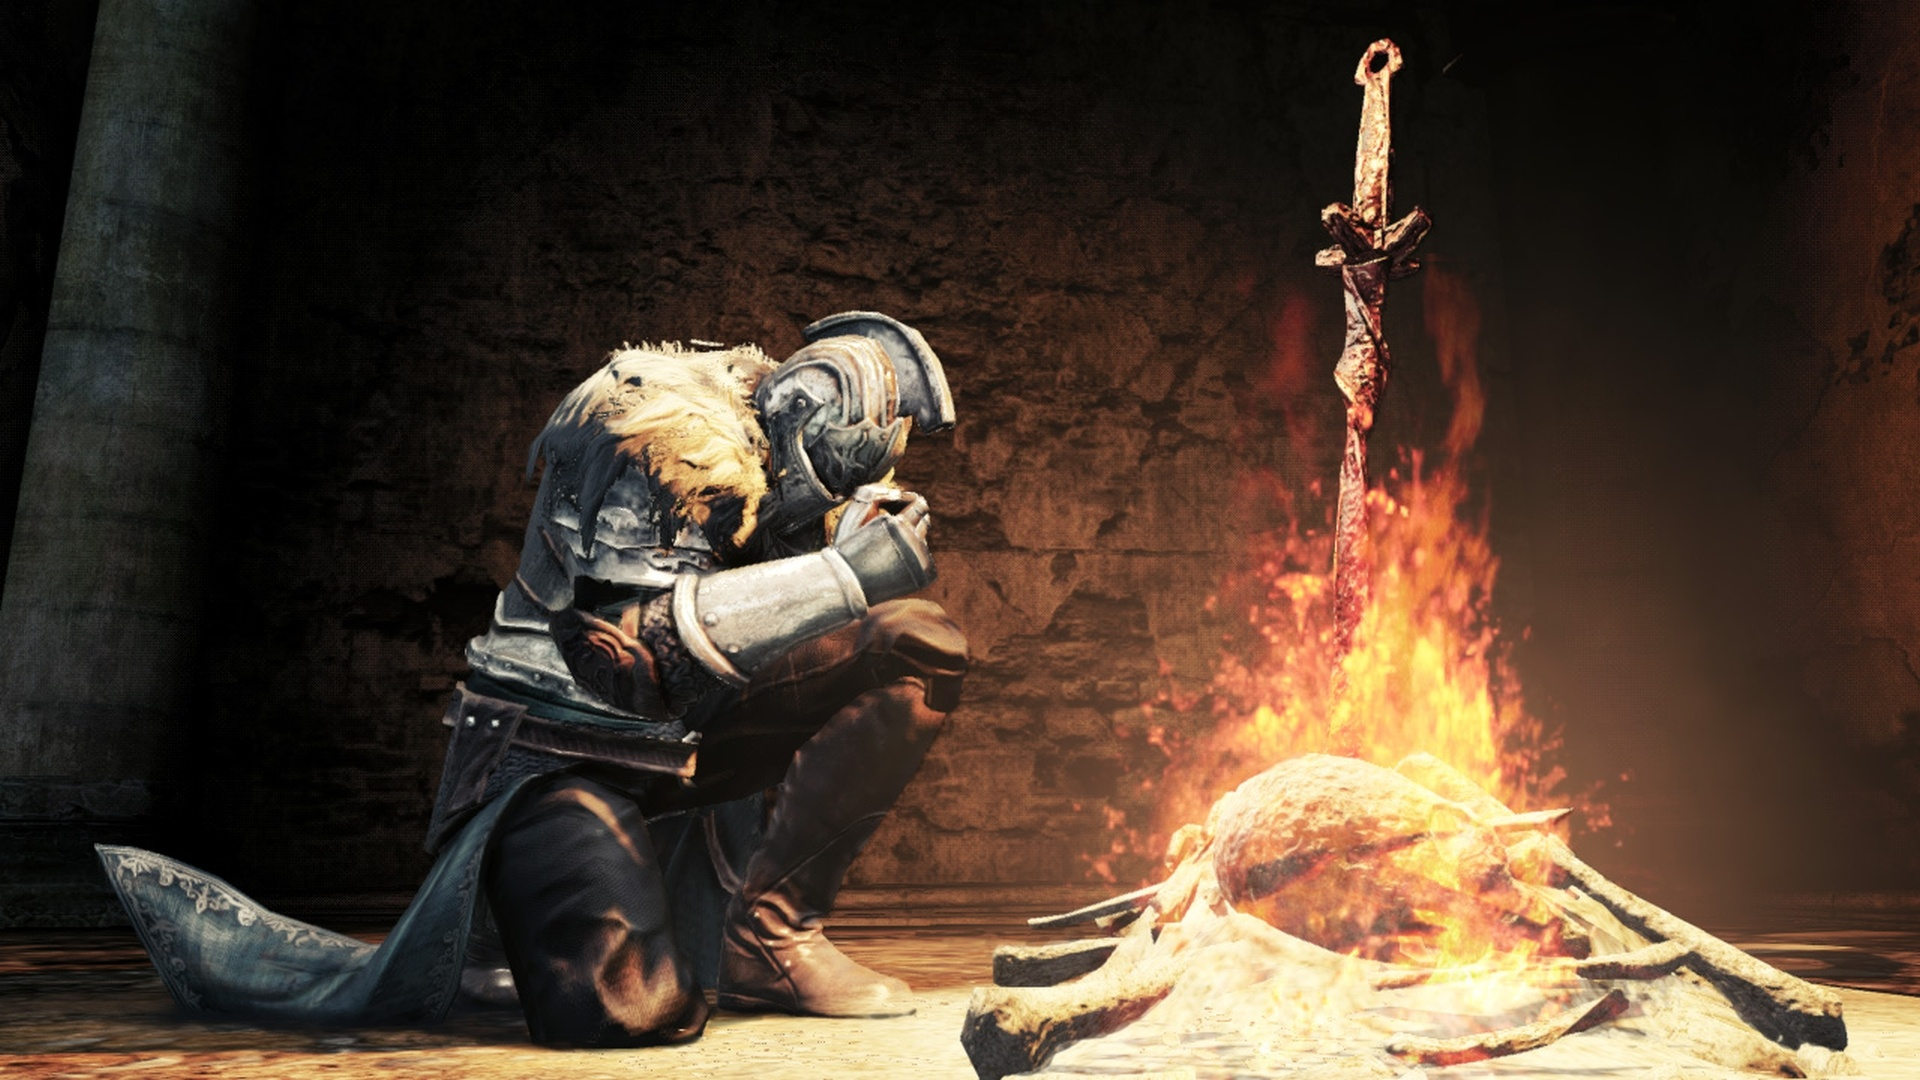 dark_souls_2_scholar_of_the_first_sin_bonfire